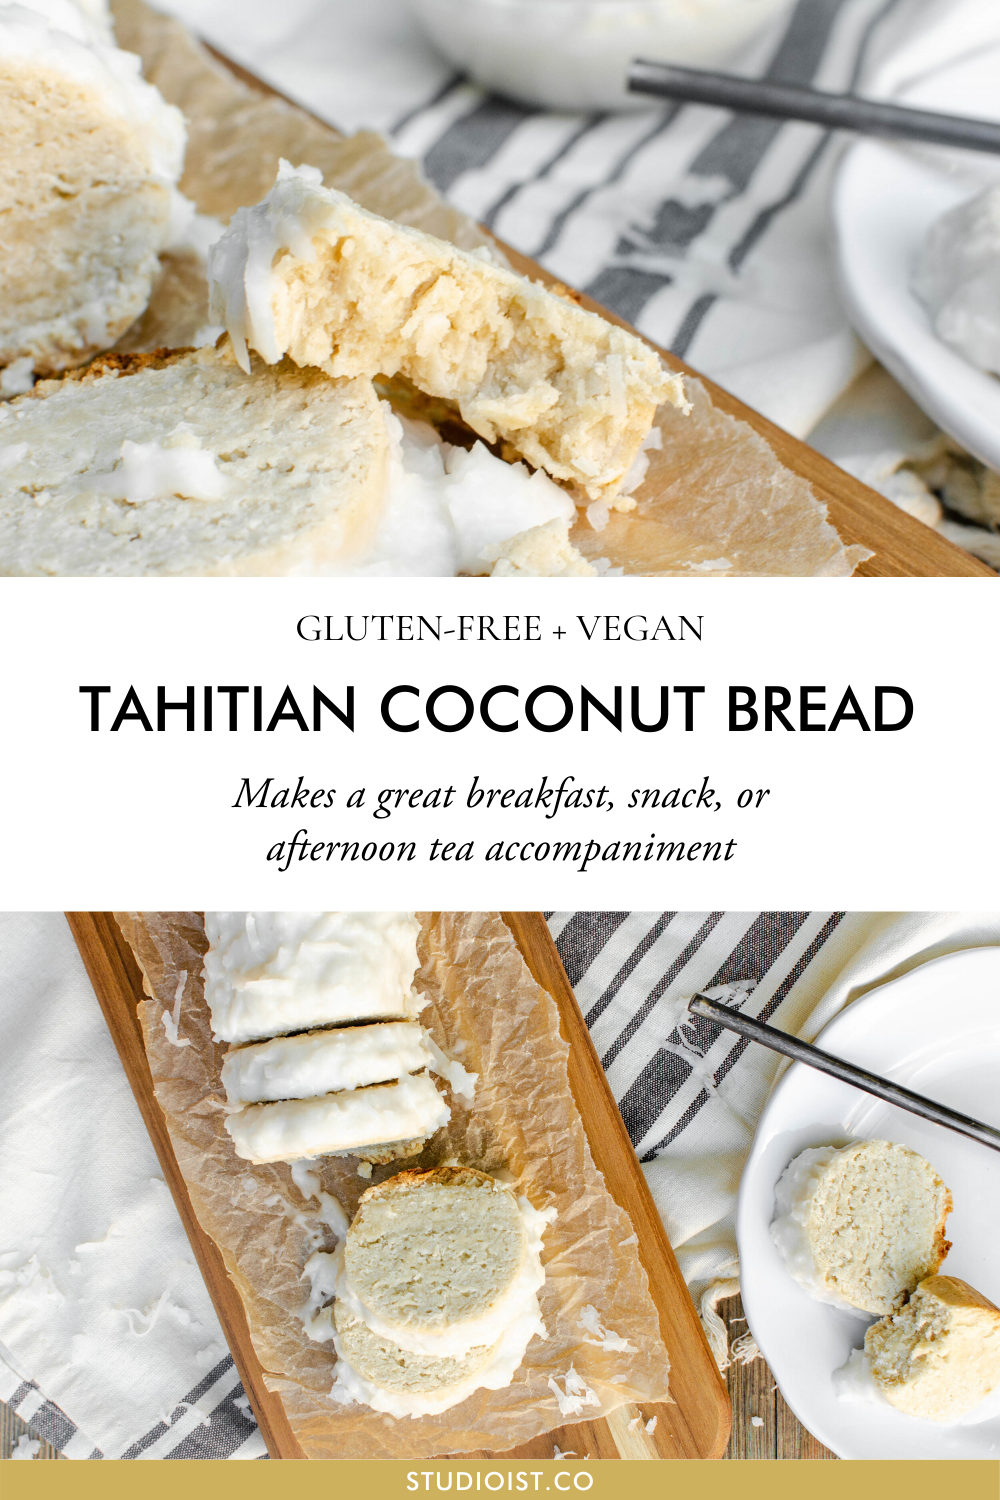 Photo of Gluten-Free + Vegan | Tahitian Coconut Bread Recipe